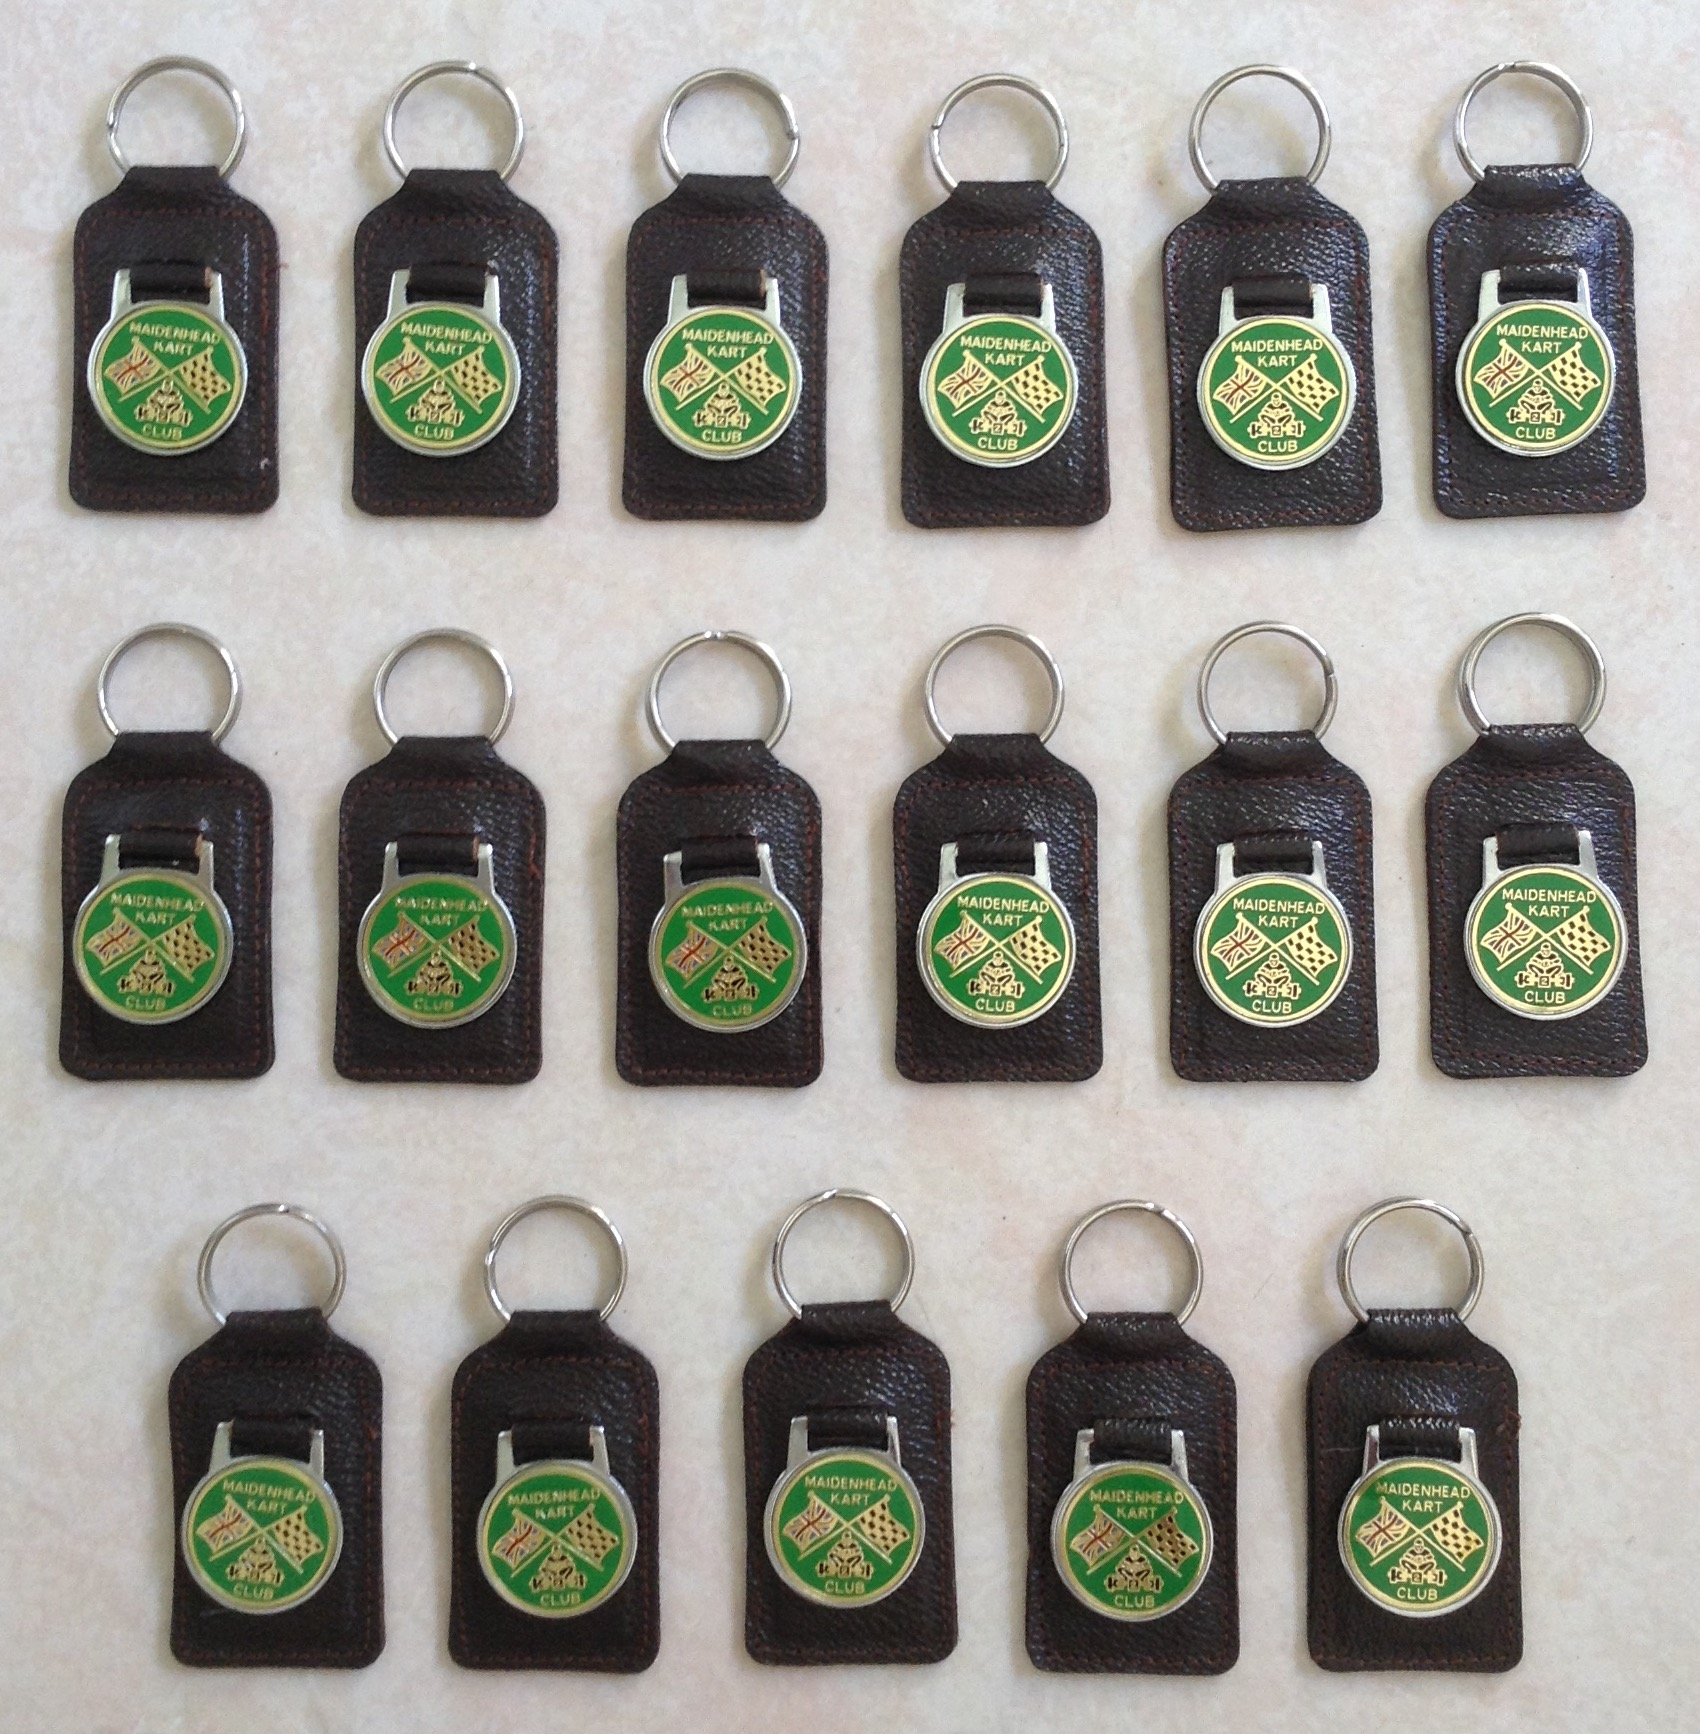 17 1960s MAIDENHEAD KART CLUB KEYRINGS